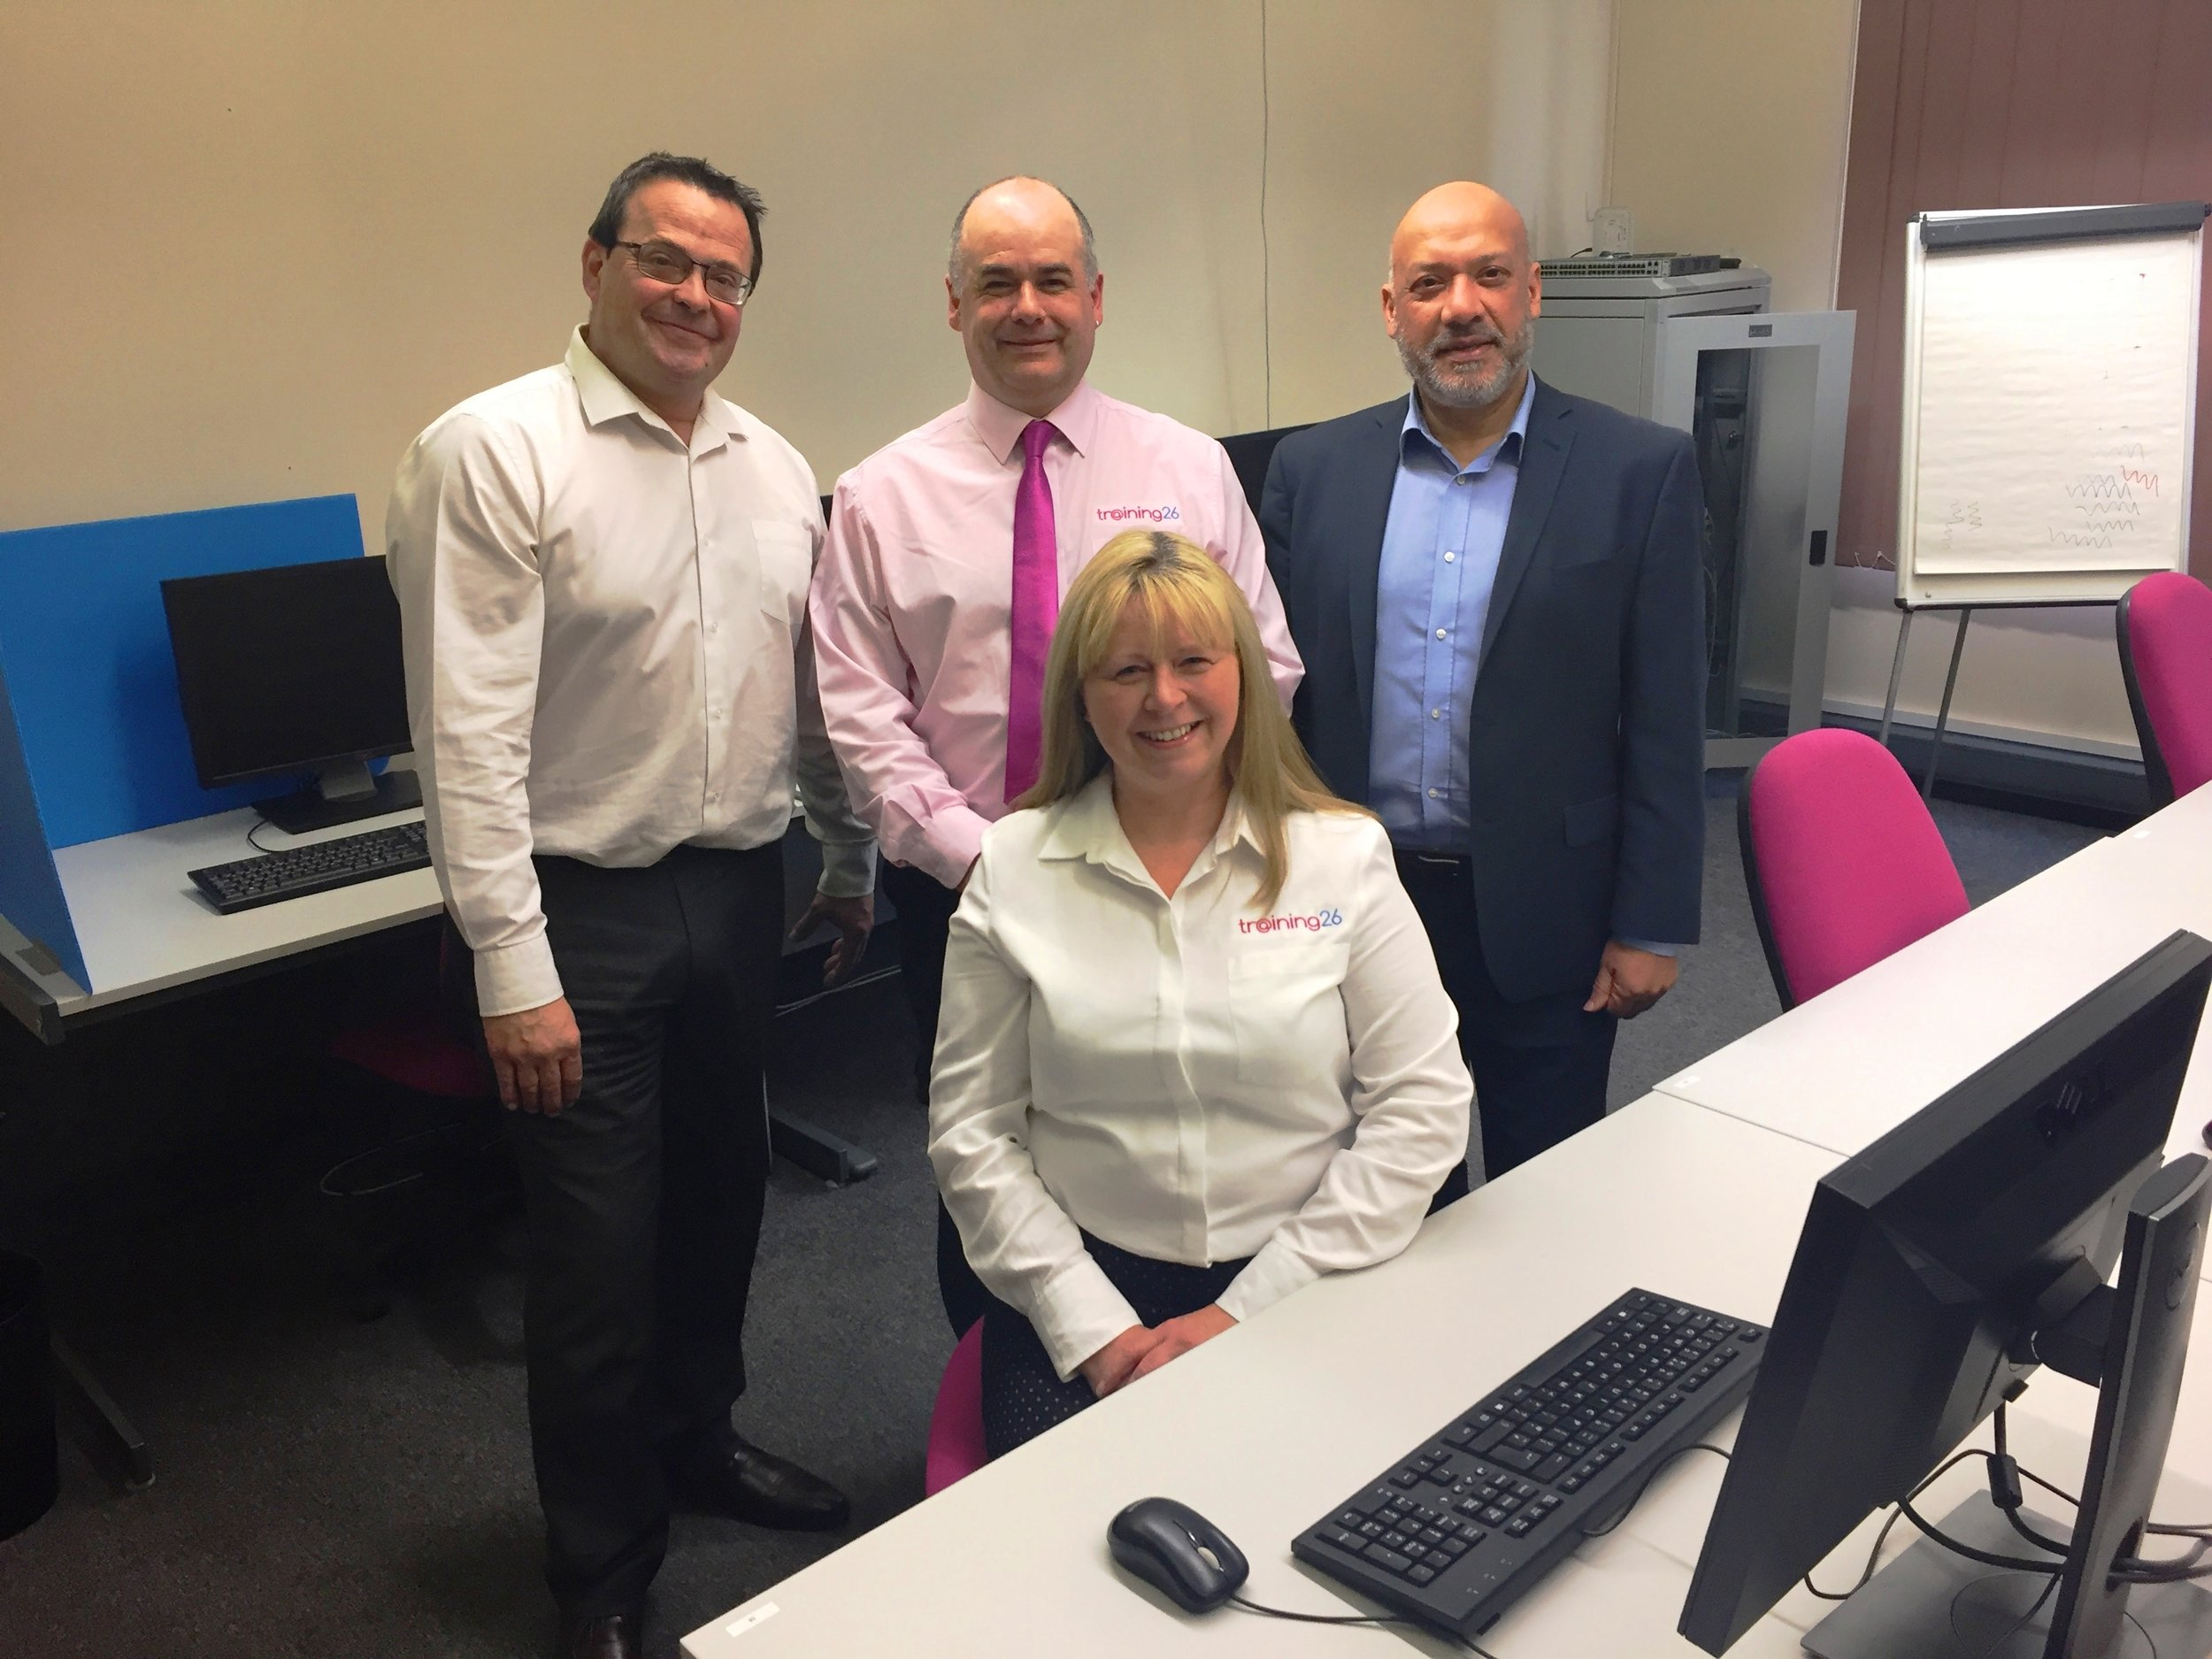 Training 26 Office Manager Angela Jones with (from right to left) Unity Homes and Enterprise Chief Executive Chief Executive Ali Akbor, Training 26 Director Mike Cunningham and Unity Enterprise Manager Adrian Green at Leeds Media Centre